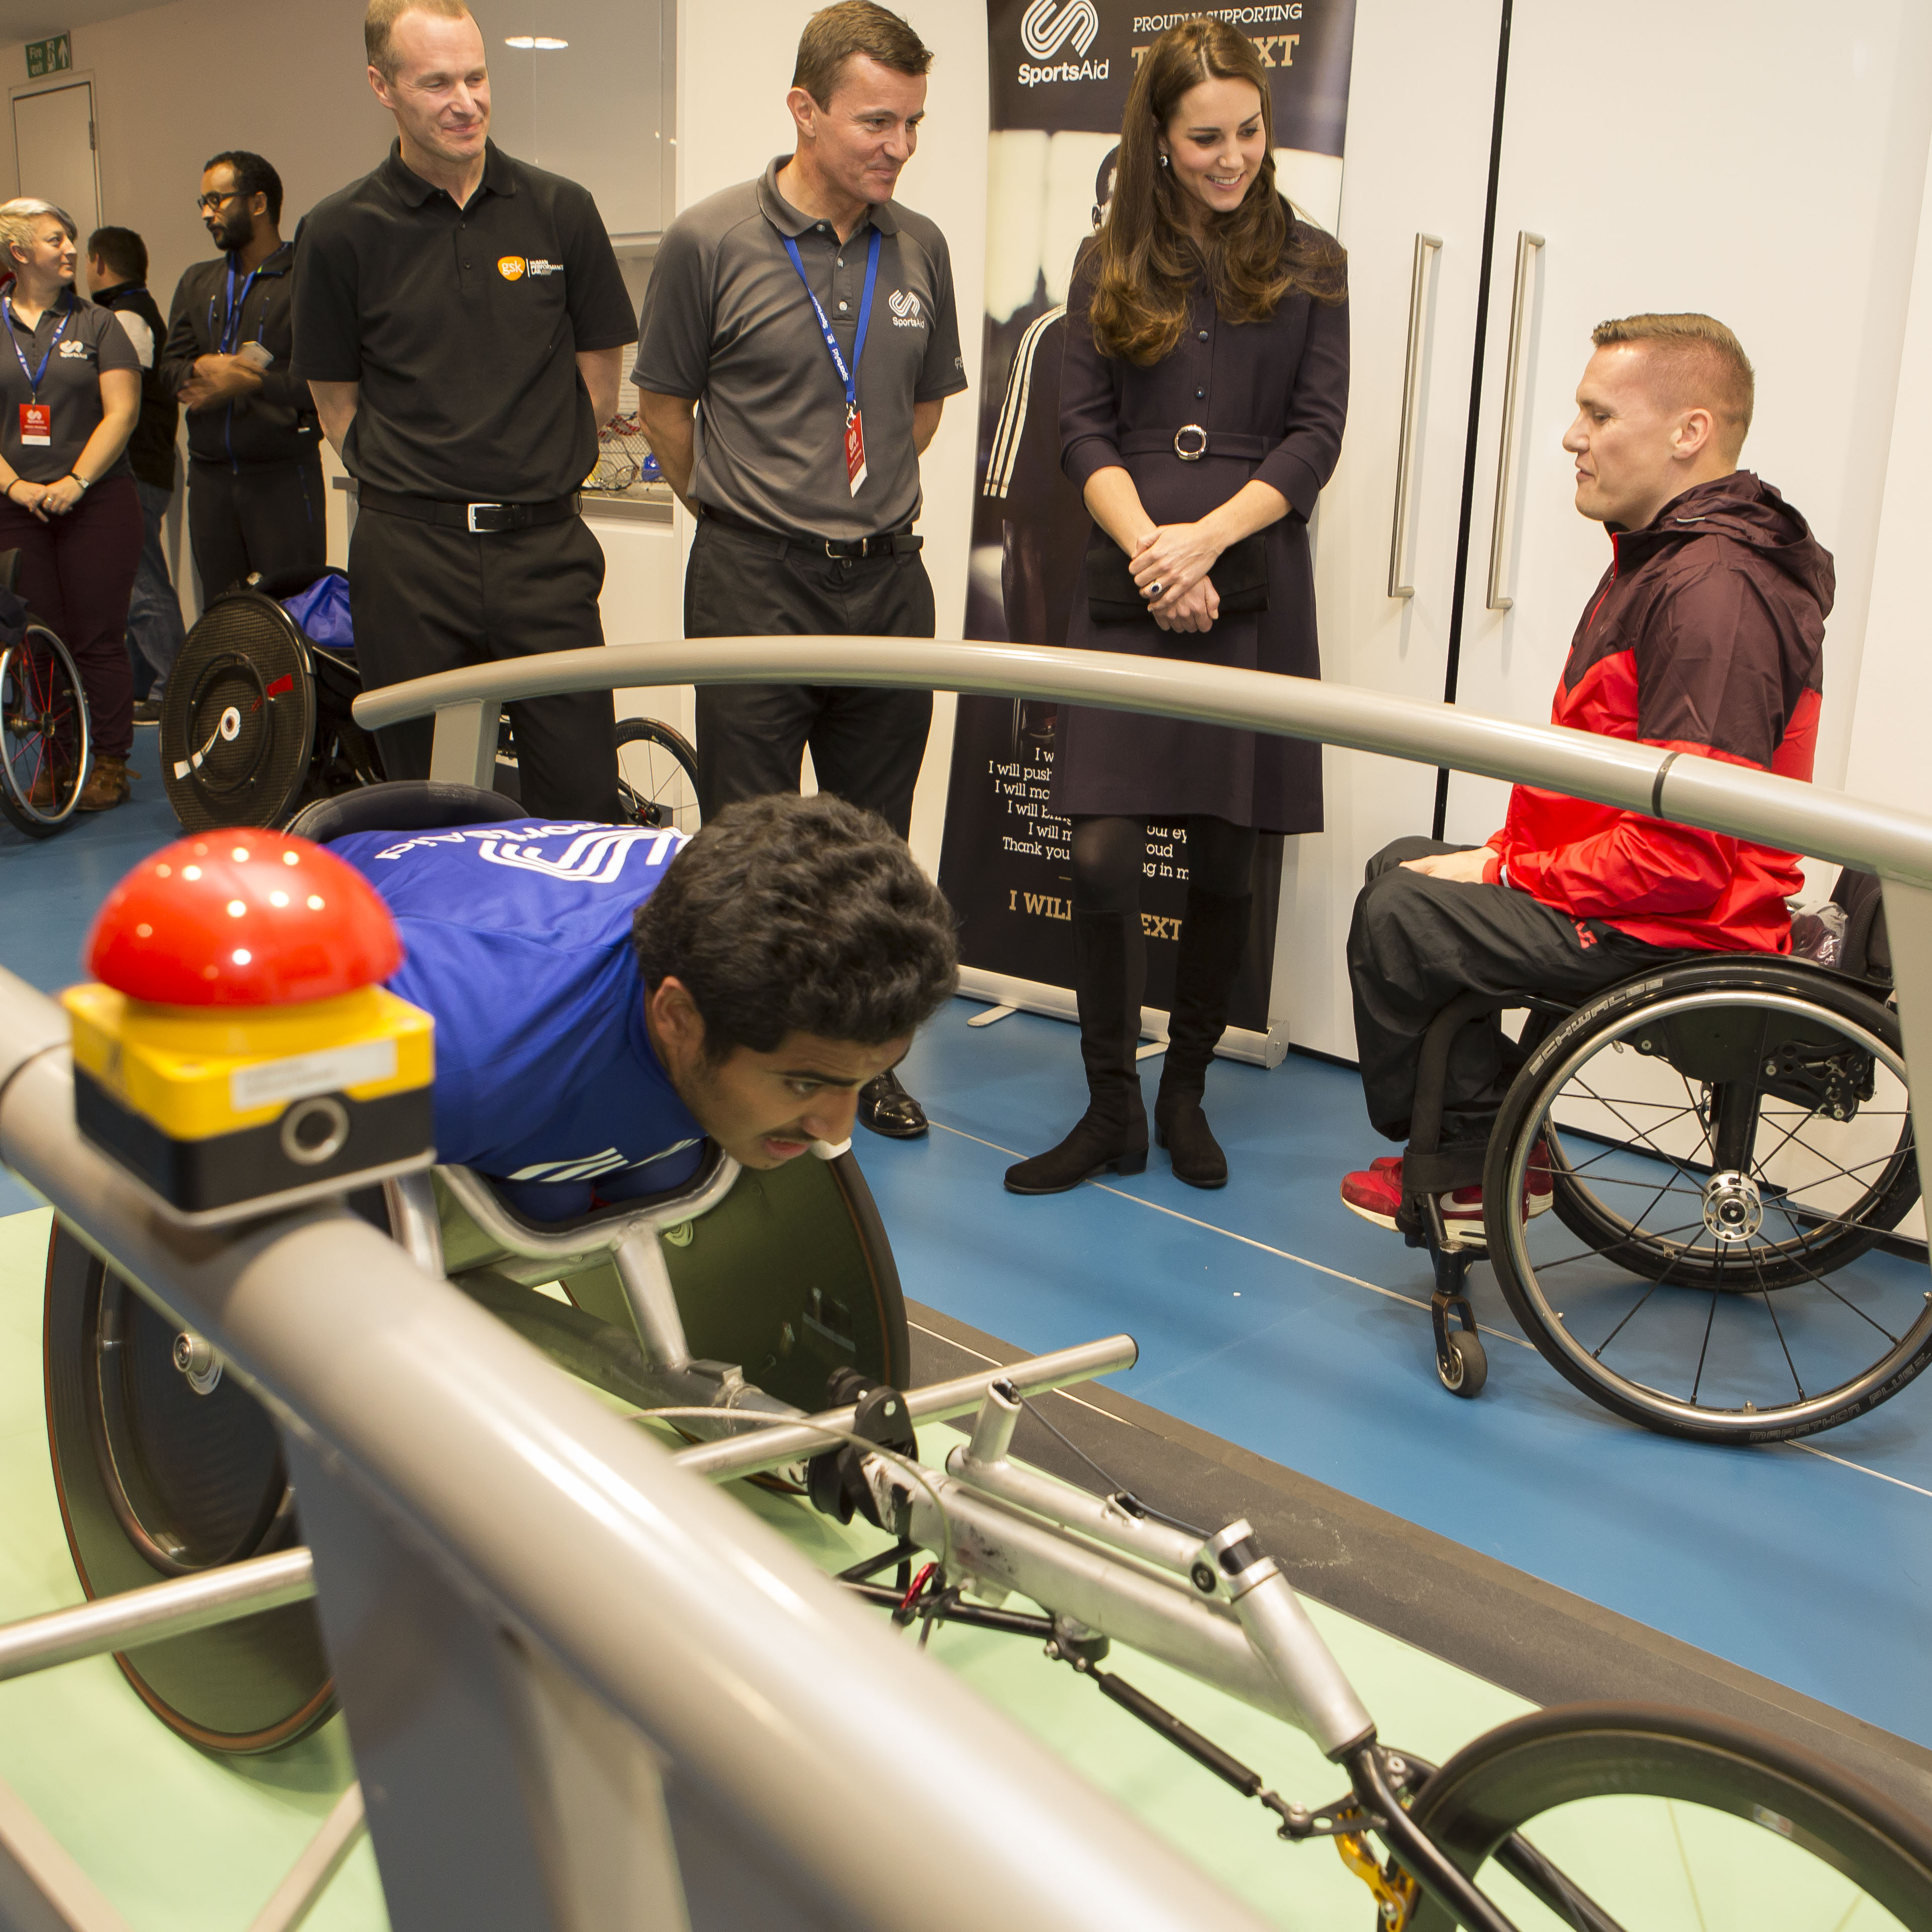 Duchess Kate At Sportsaid Athlete Workshop Kate